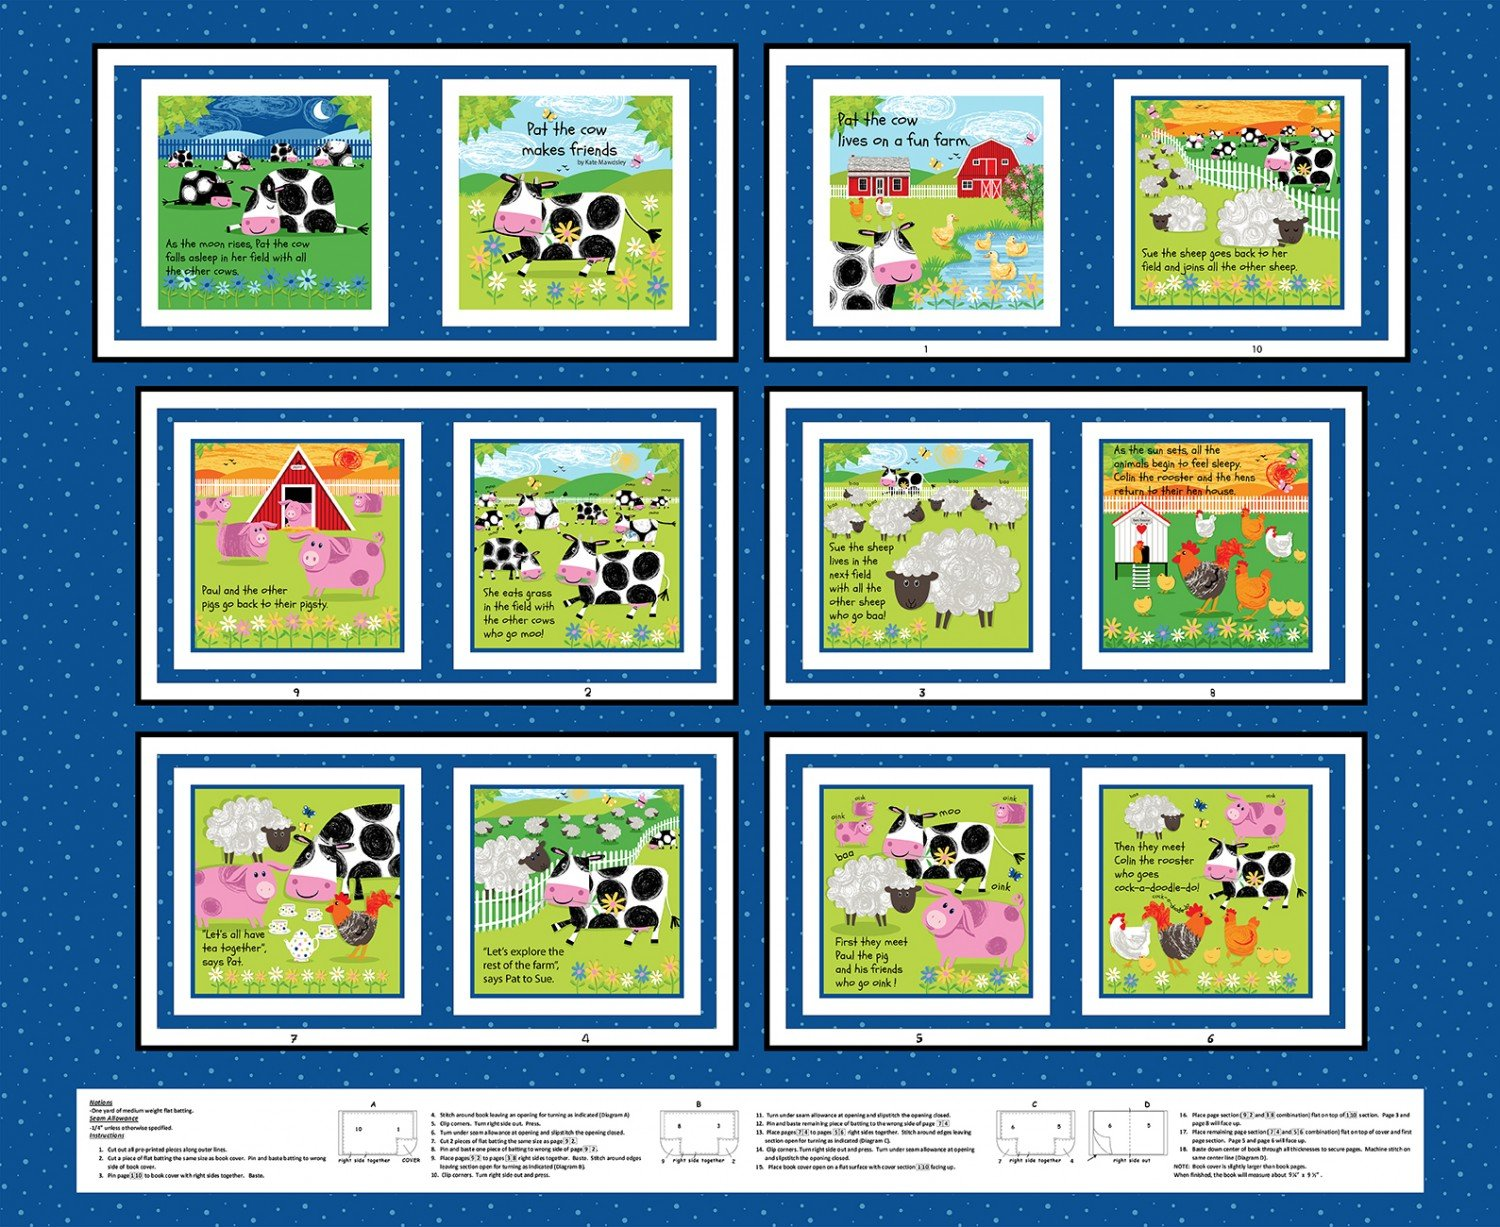 Best Friends Cloth Book Panels To Sew 36 x 44 Inches from Henry Glass